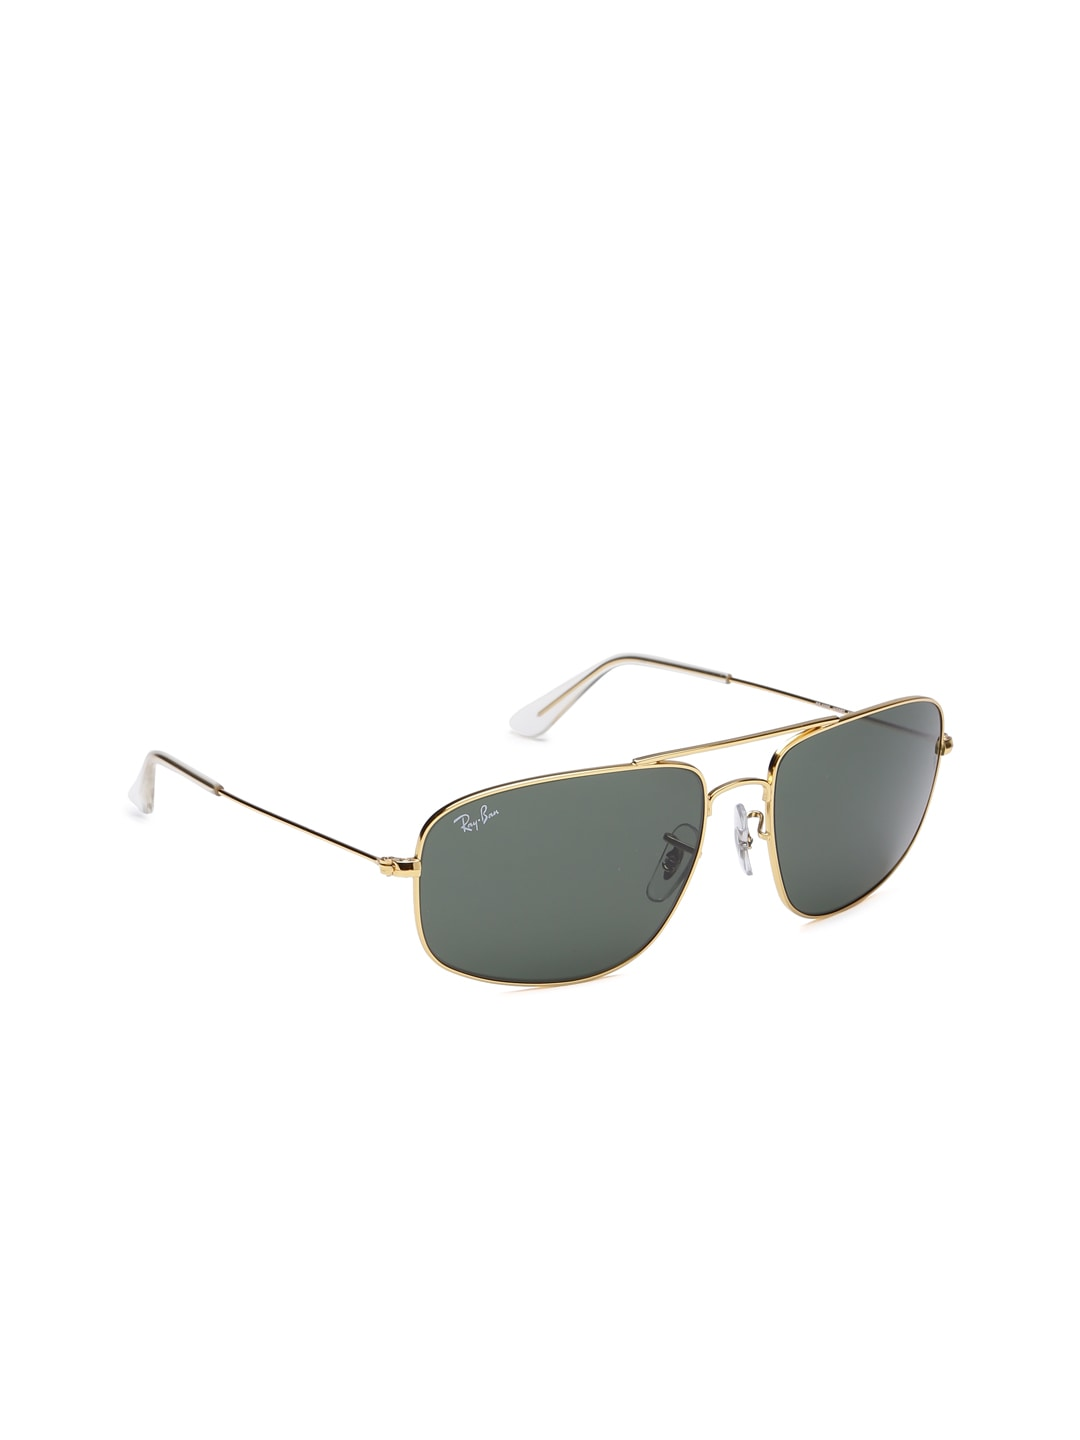 e450fe2428 Ray-Ban® Sunglasses - Buy Ray-Ban® sunglasses Online